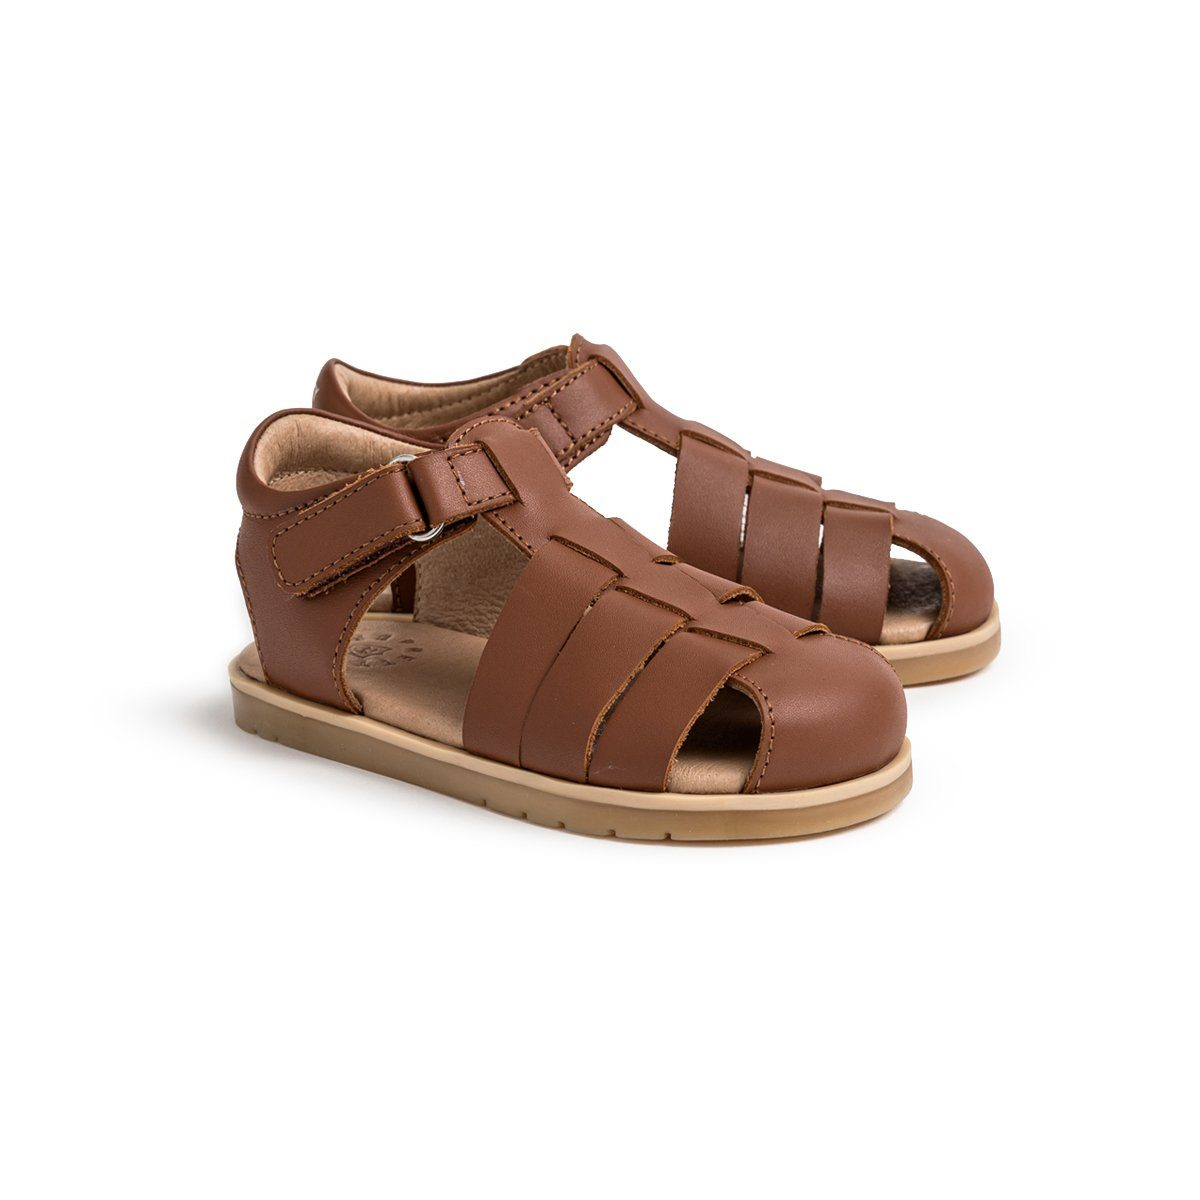 Rocco Sandals (Dark Tan)